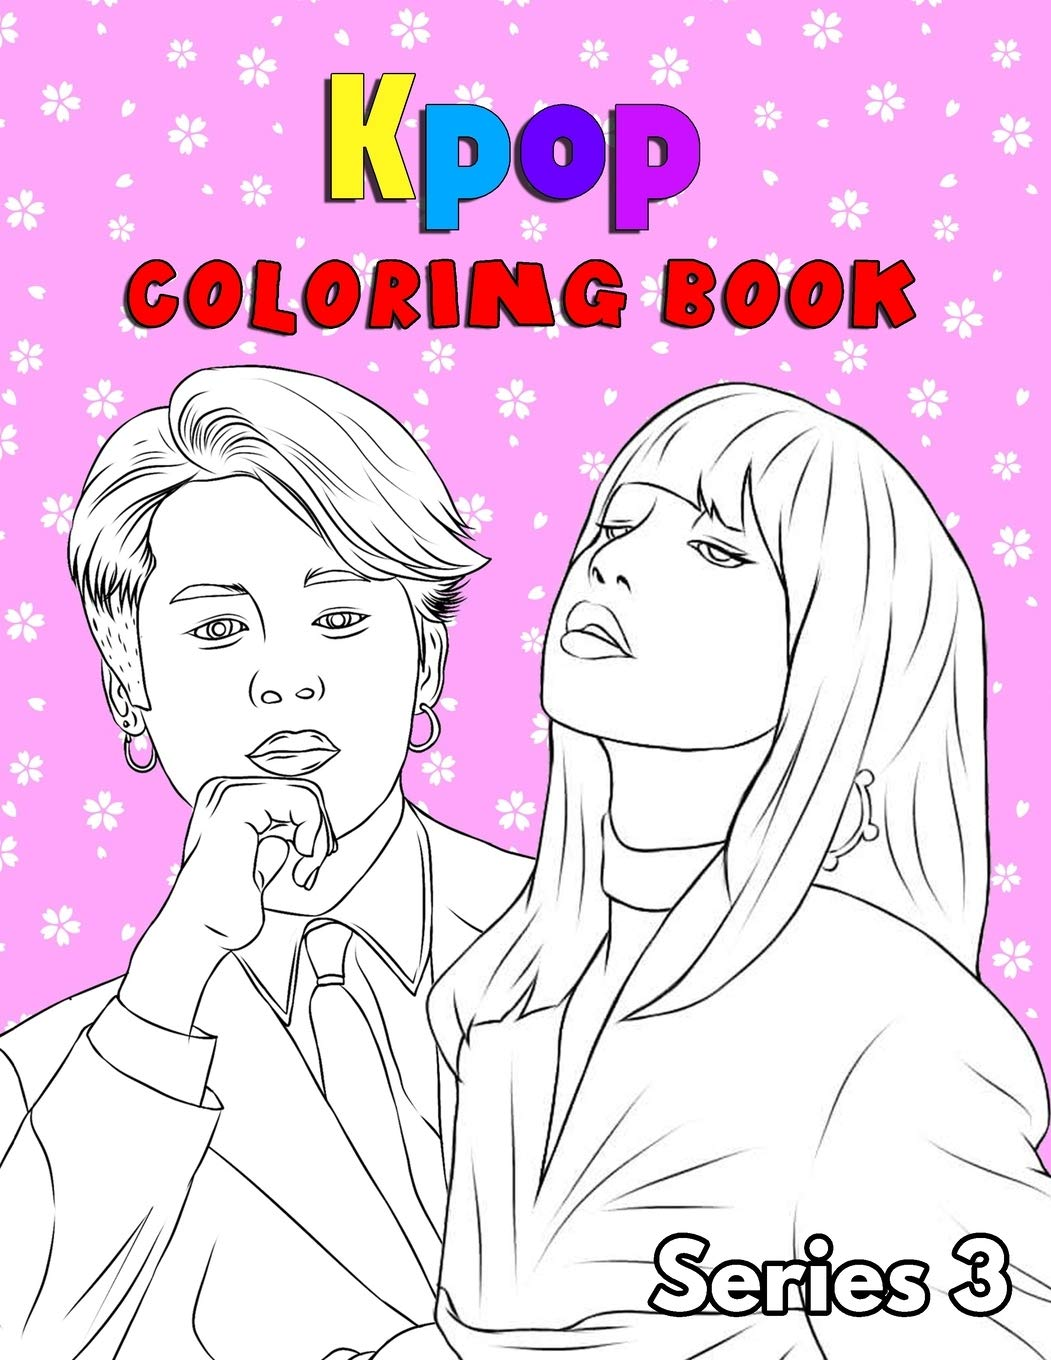 Kpop Coloring Book For Bts Jin Rm Jhope Suga Jimin V And Jungkook Exo Blackpink Kpop Lover Fans K Pop Book Series 3 Amazon De Questoplay Coloring Book Fremdsprachige Bucher